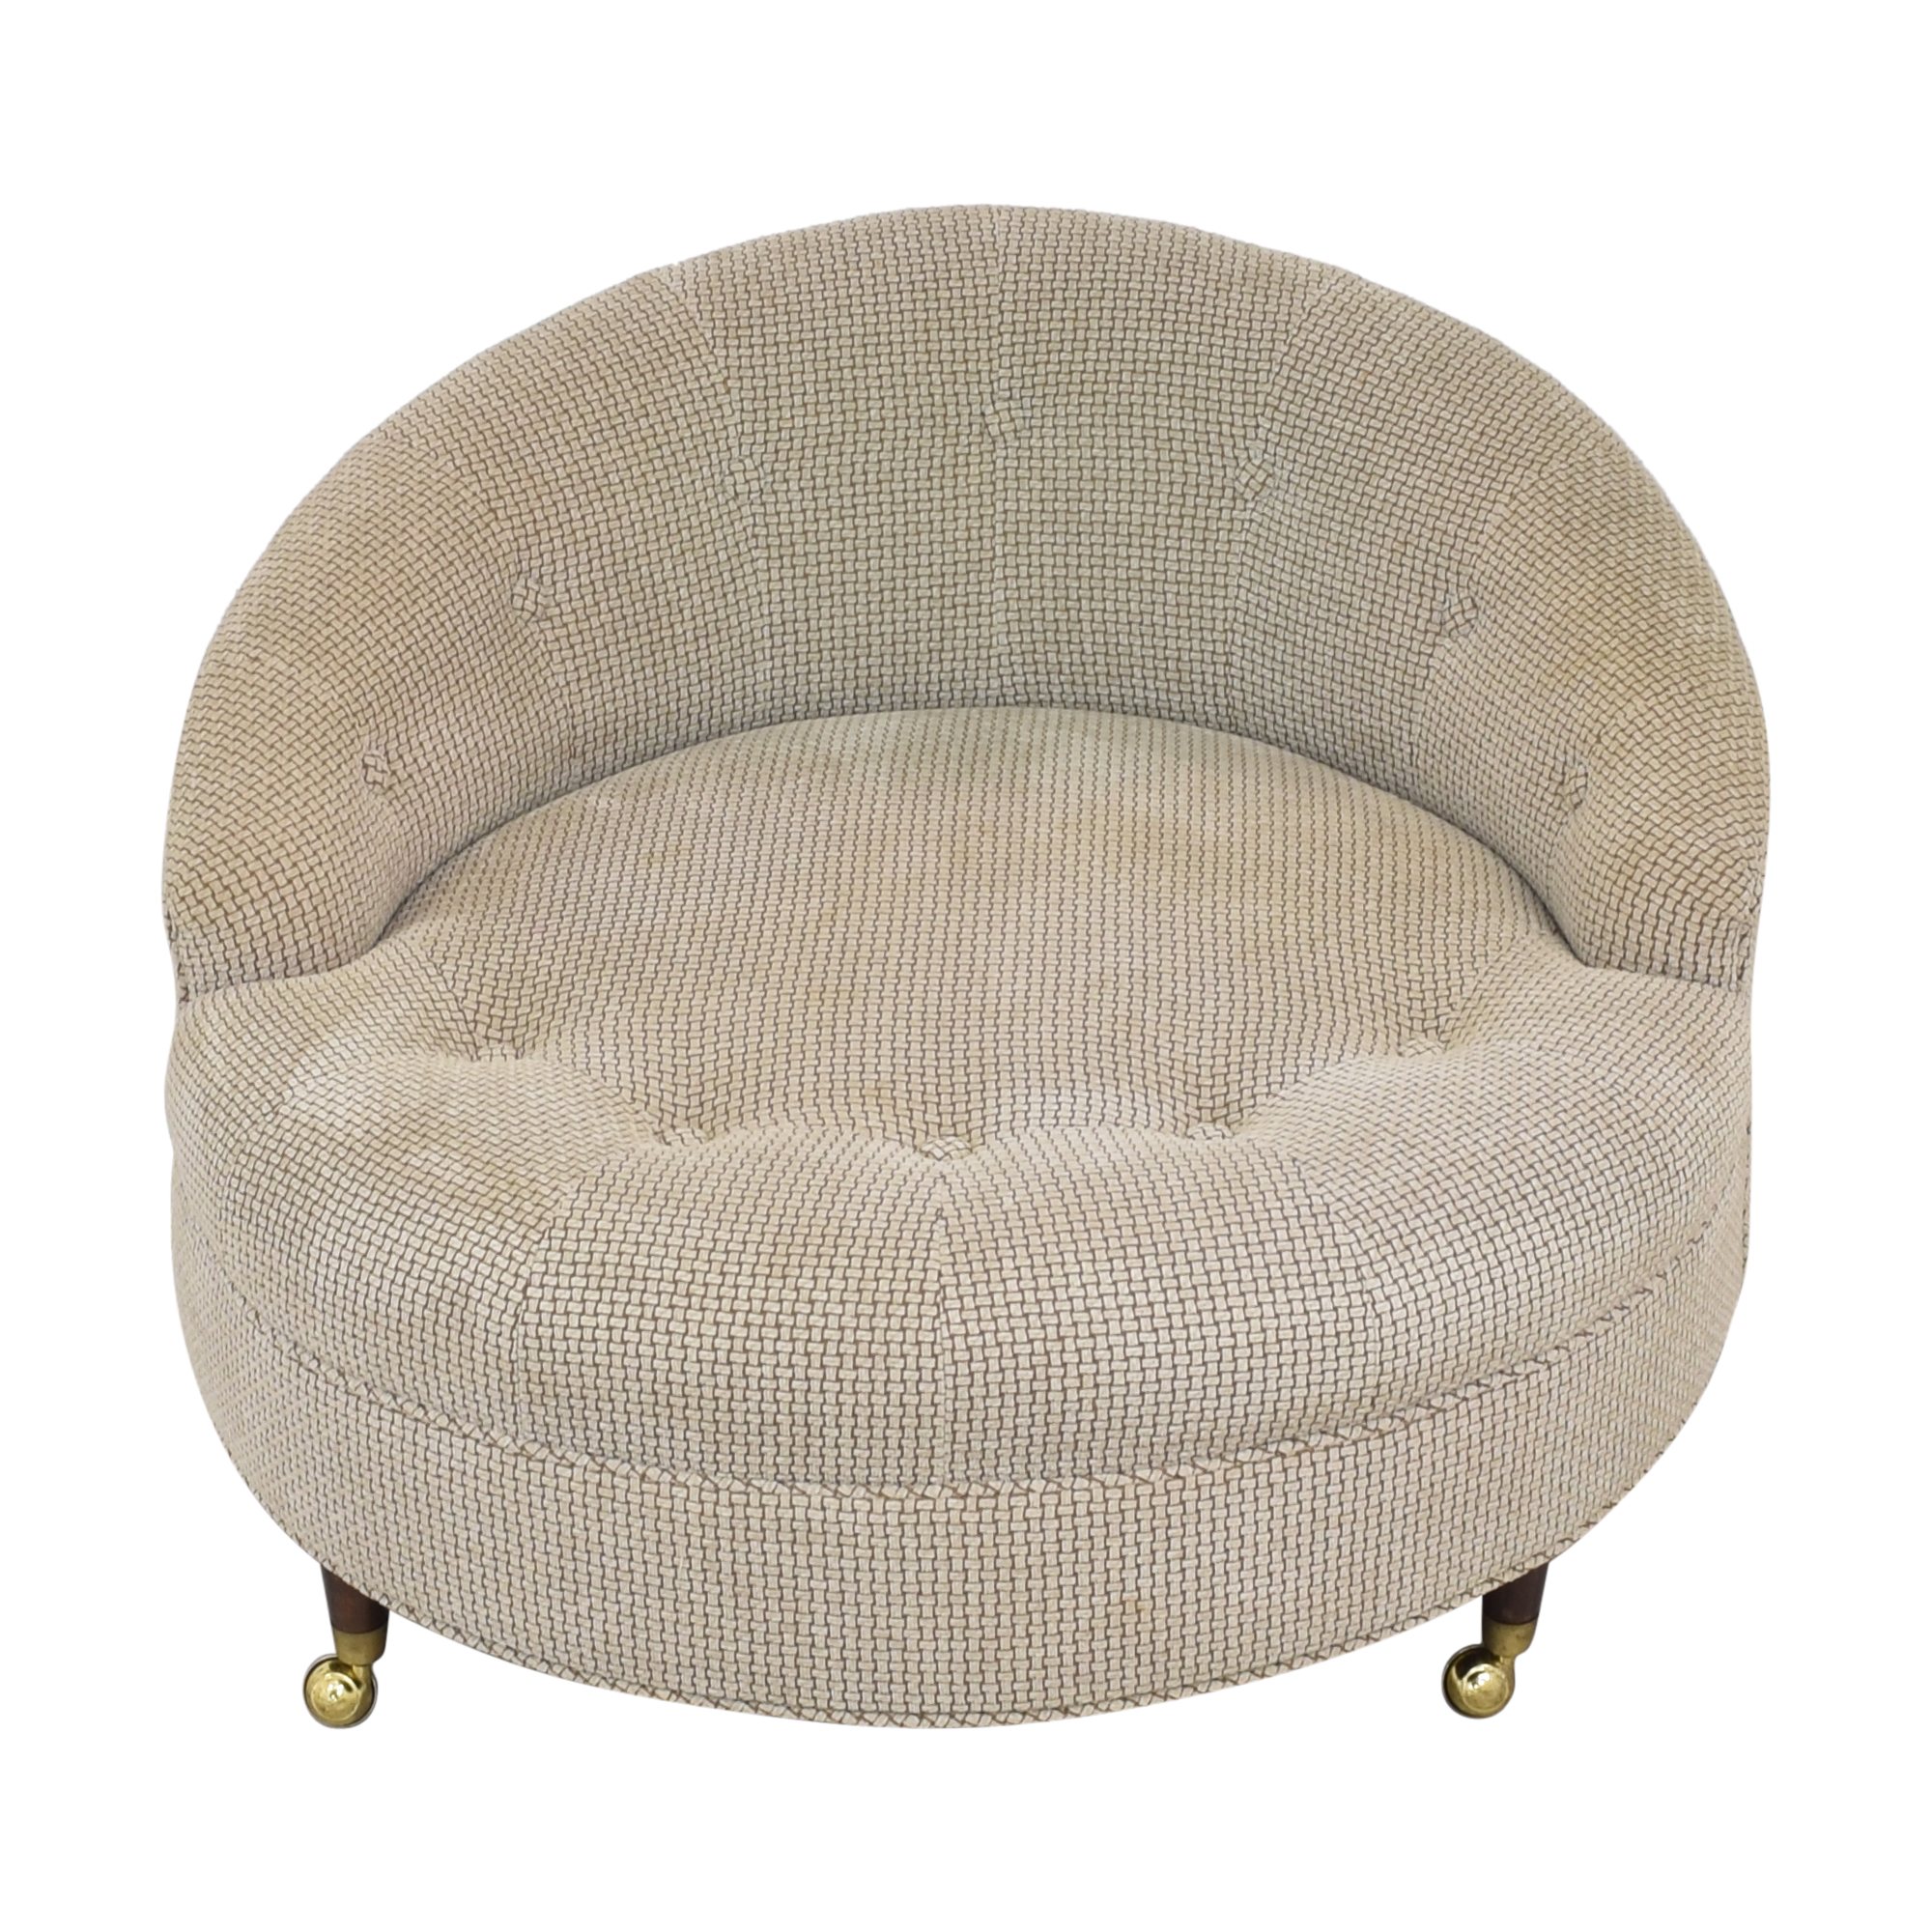 Tufted Barrel Lounge Chair